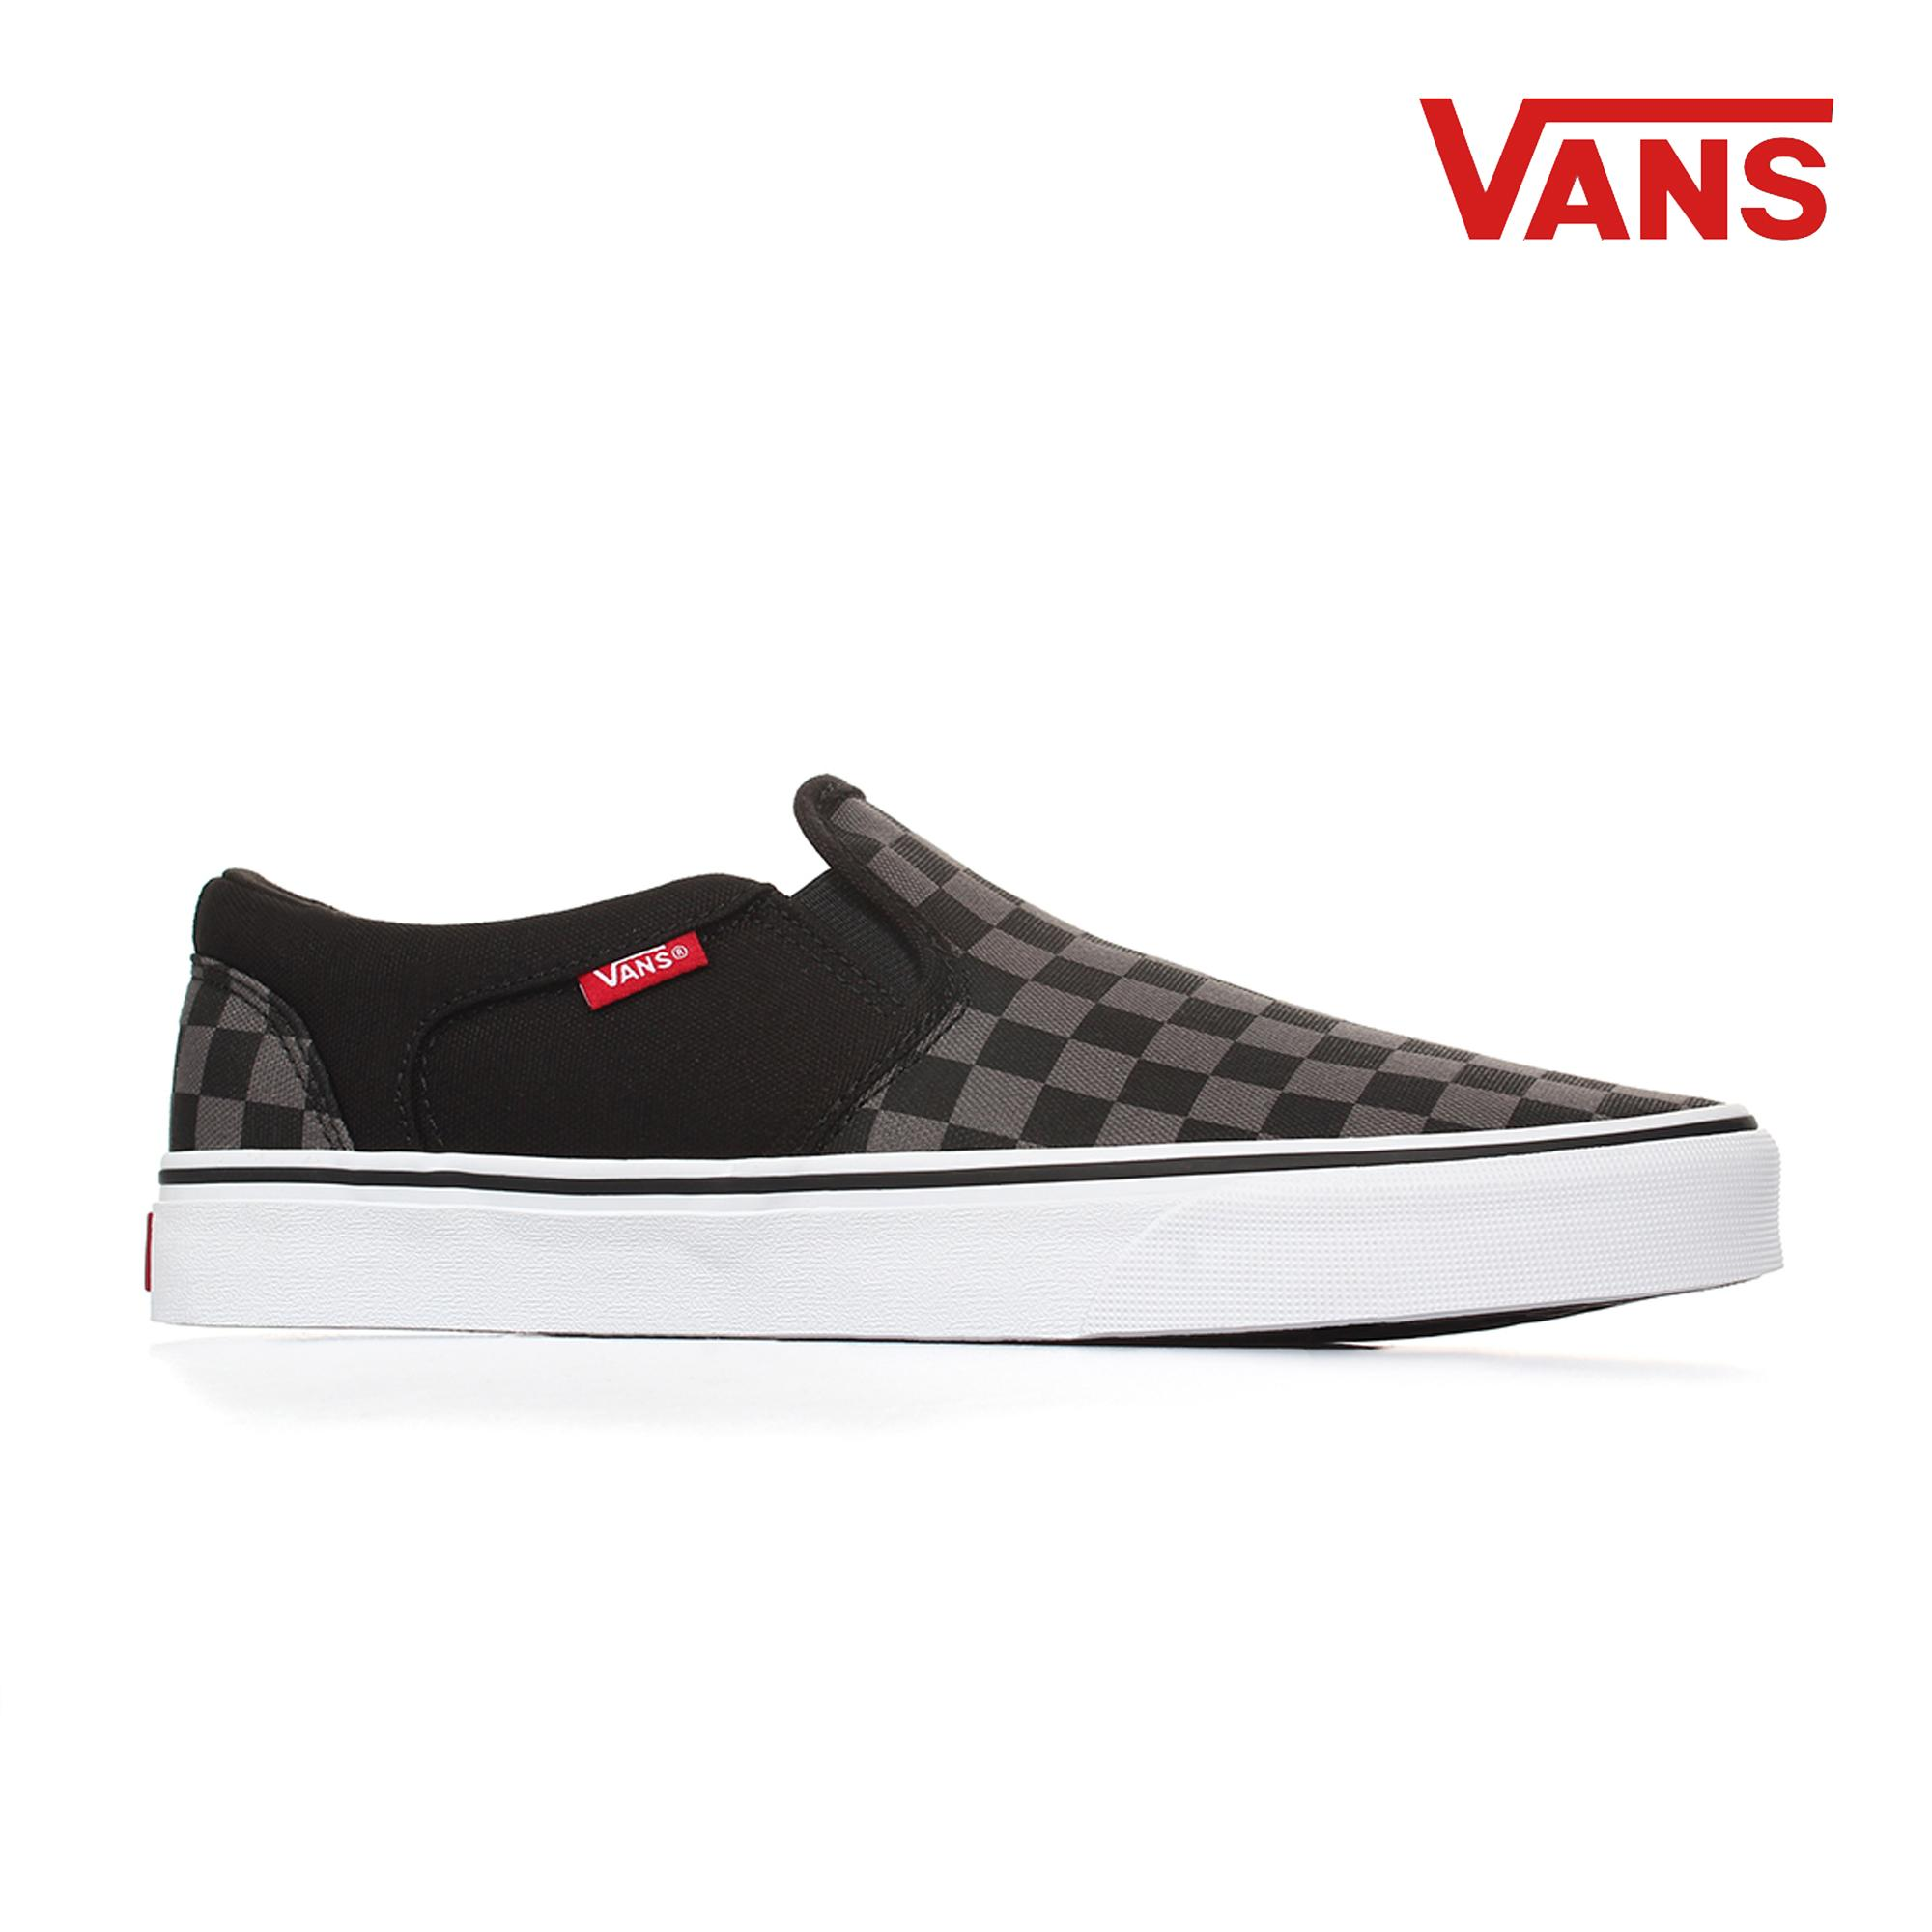 Vans Shoes for Men Philippines - Vans Men s Shoes for sale - prices ... d749e871b